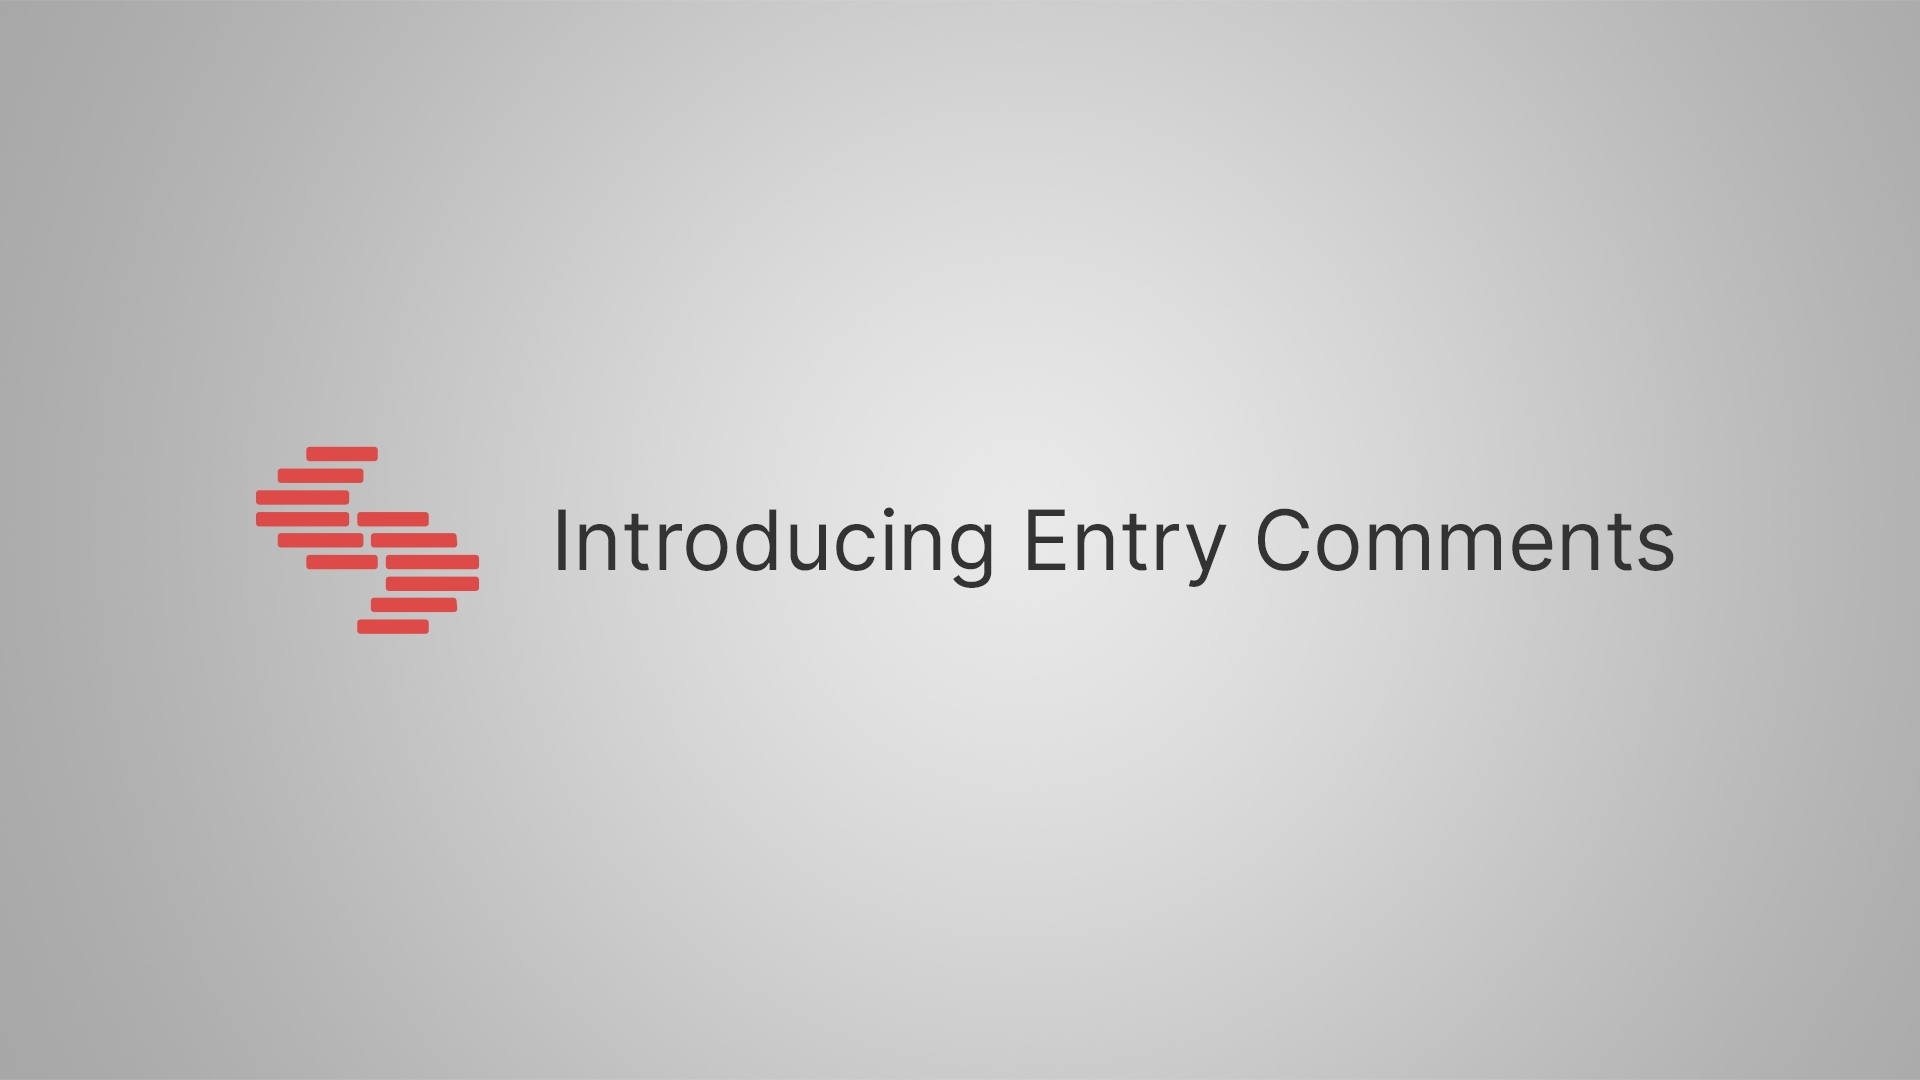 How to use Entry Comments